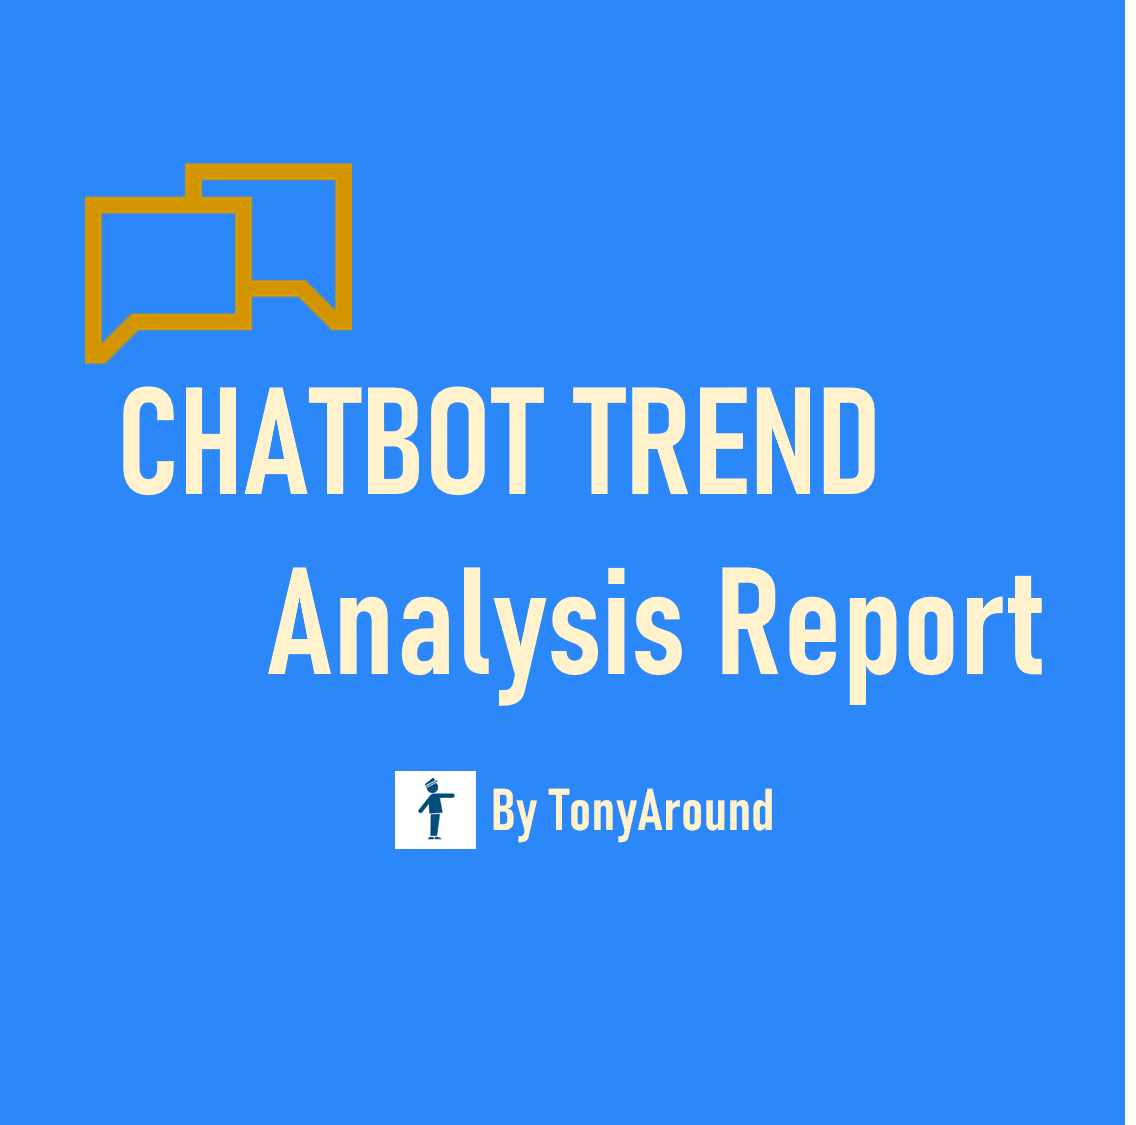 [September 2020]Chatbot Trend Analysis Report by TonyAround